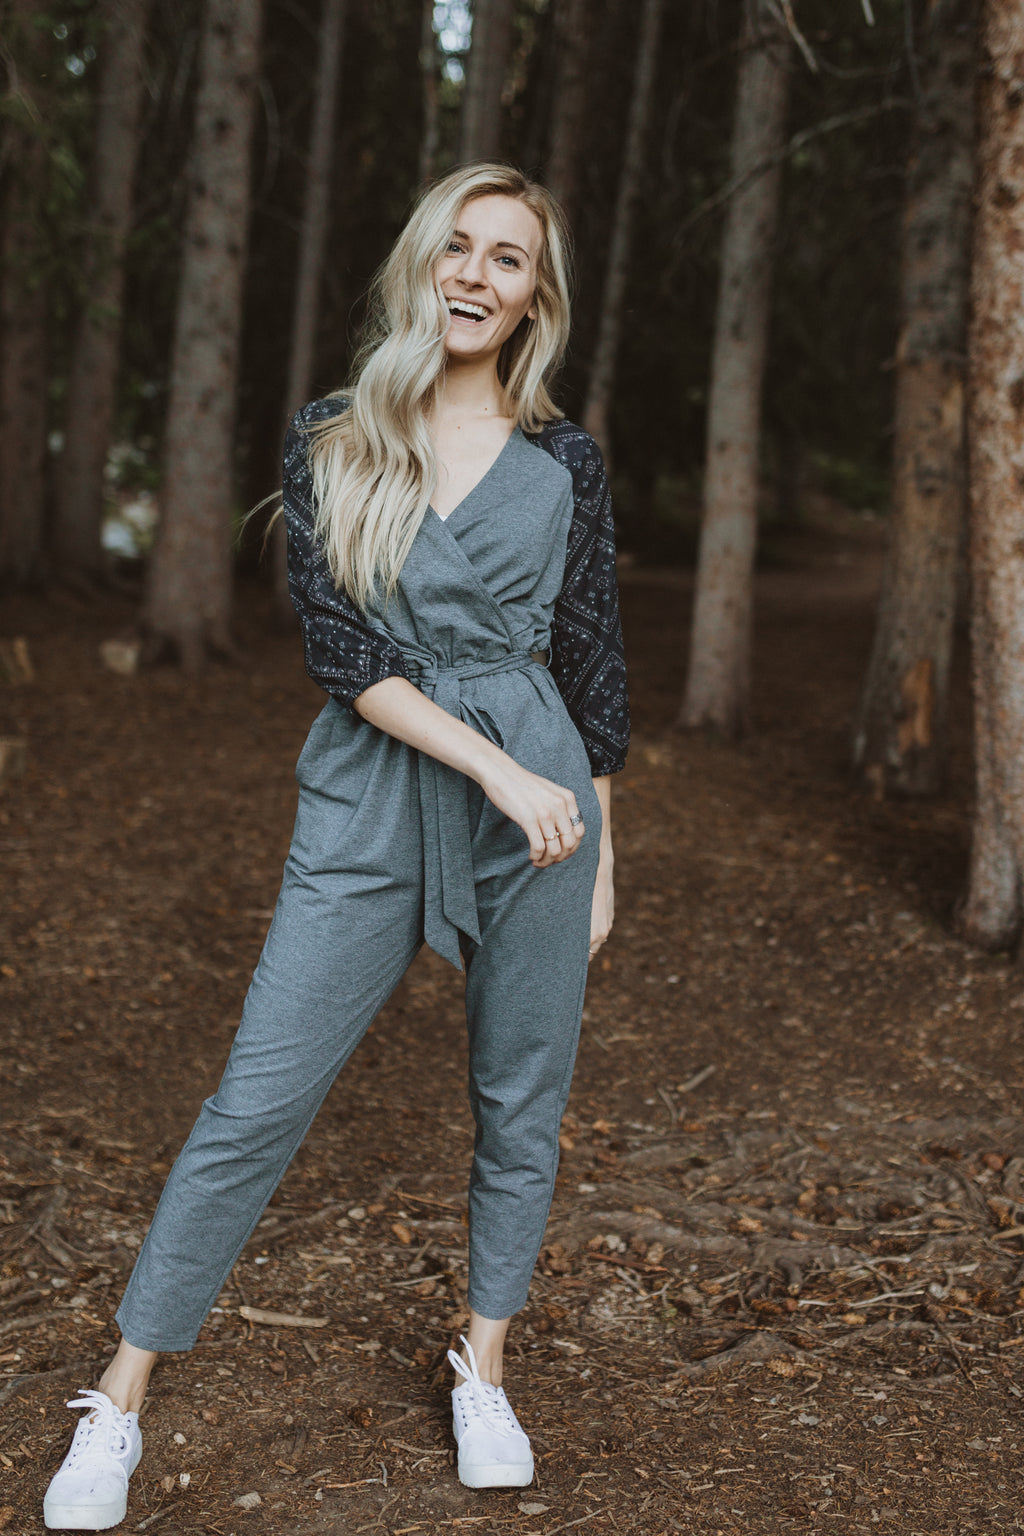 The Lunar Contrast Wrap Jumpsuit in Heather Grey